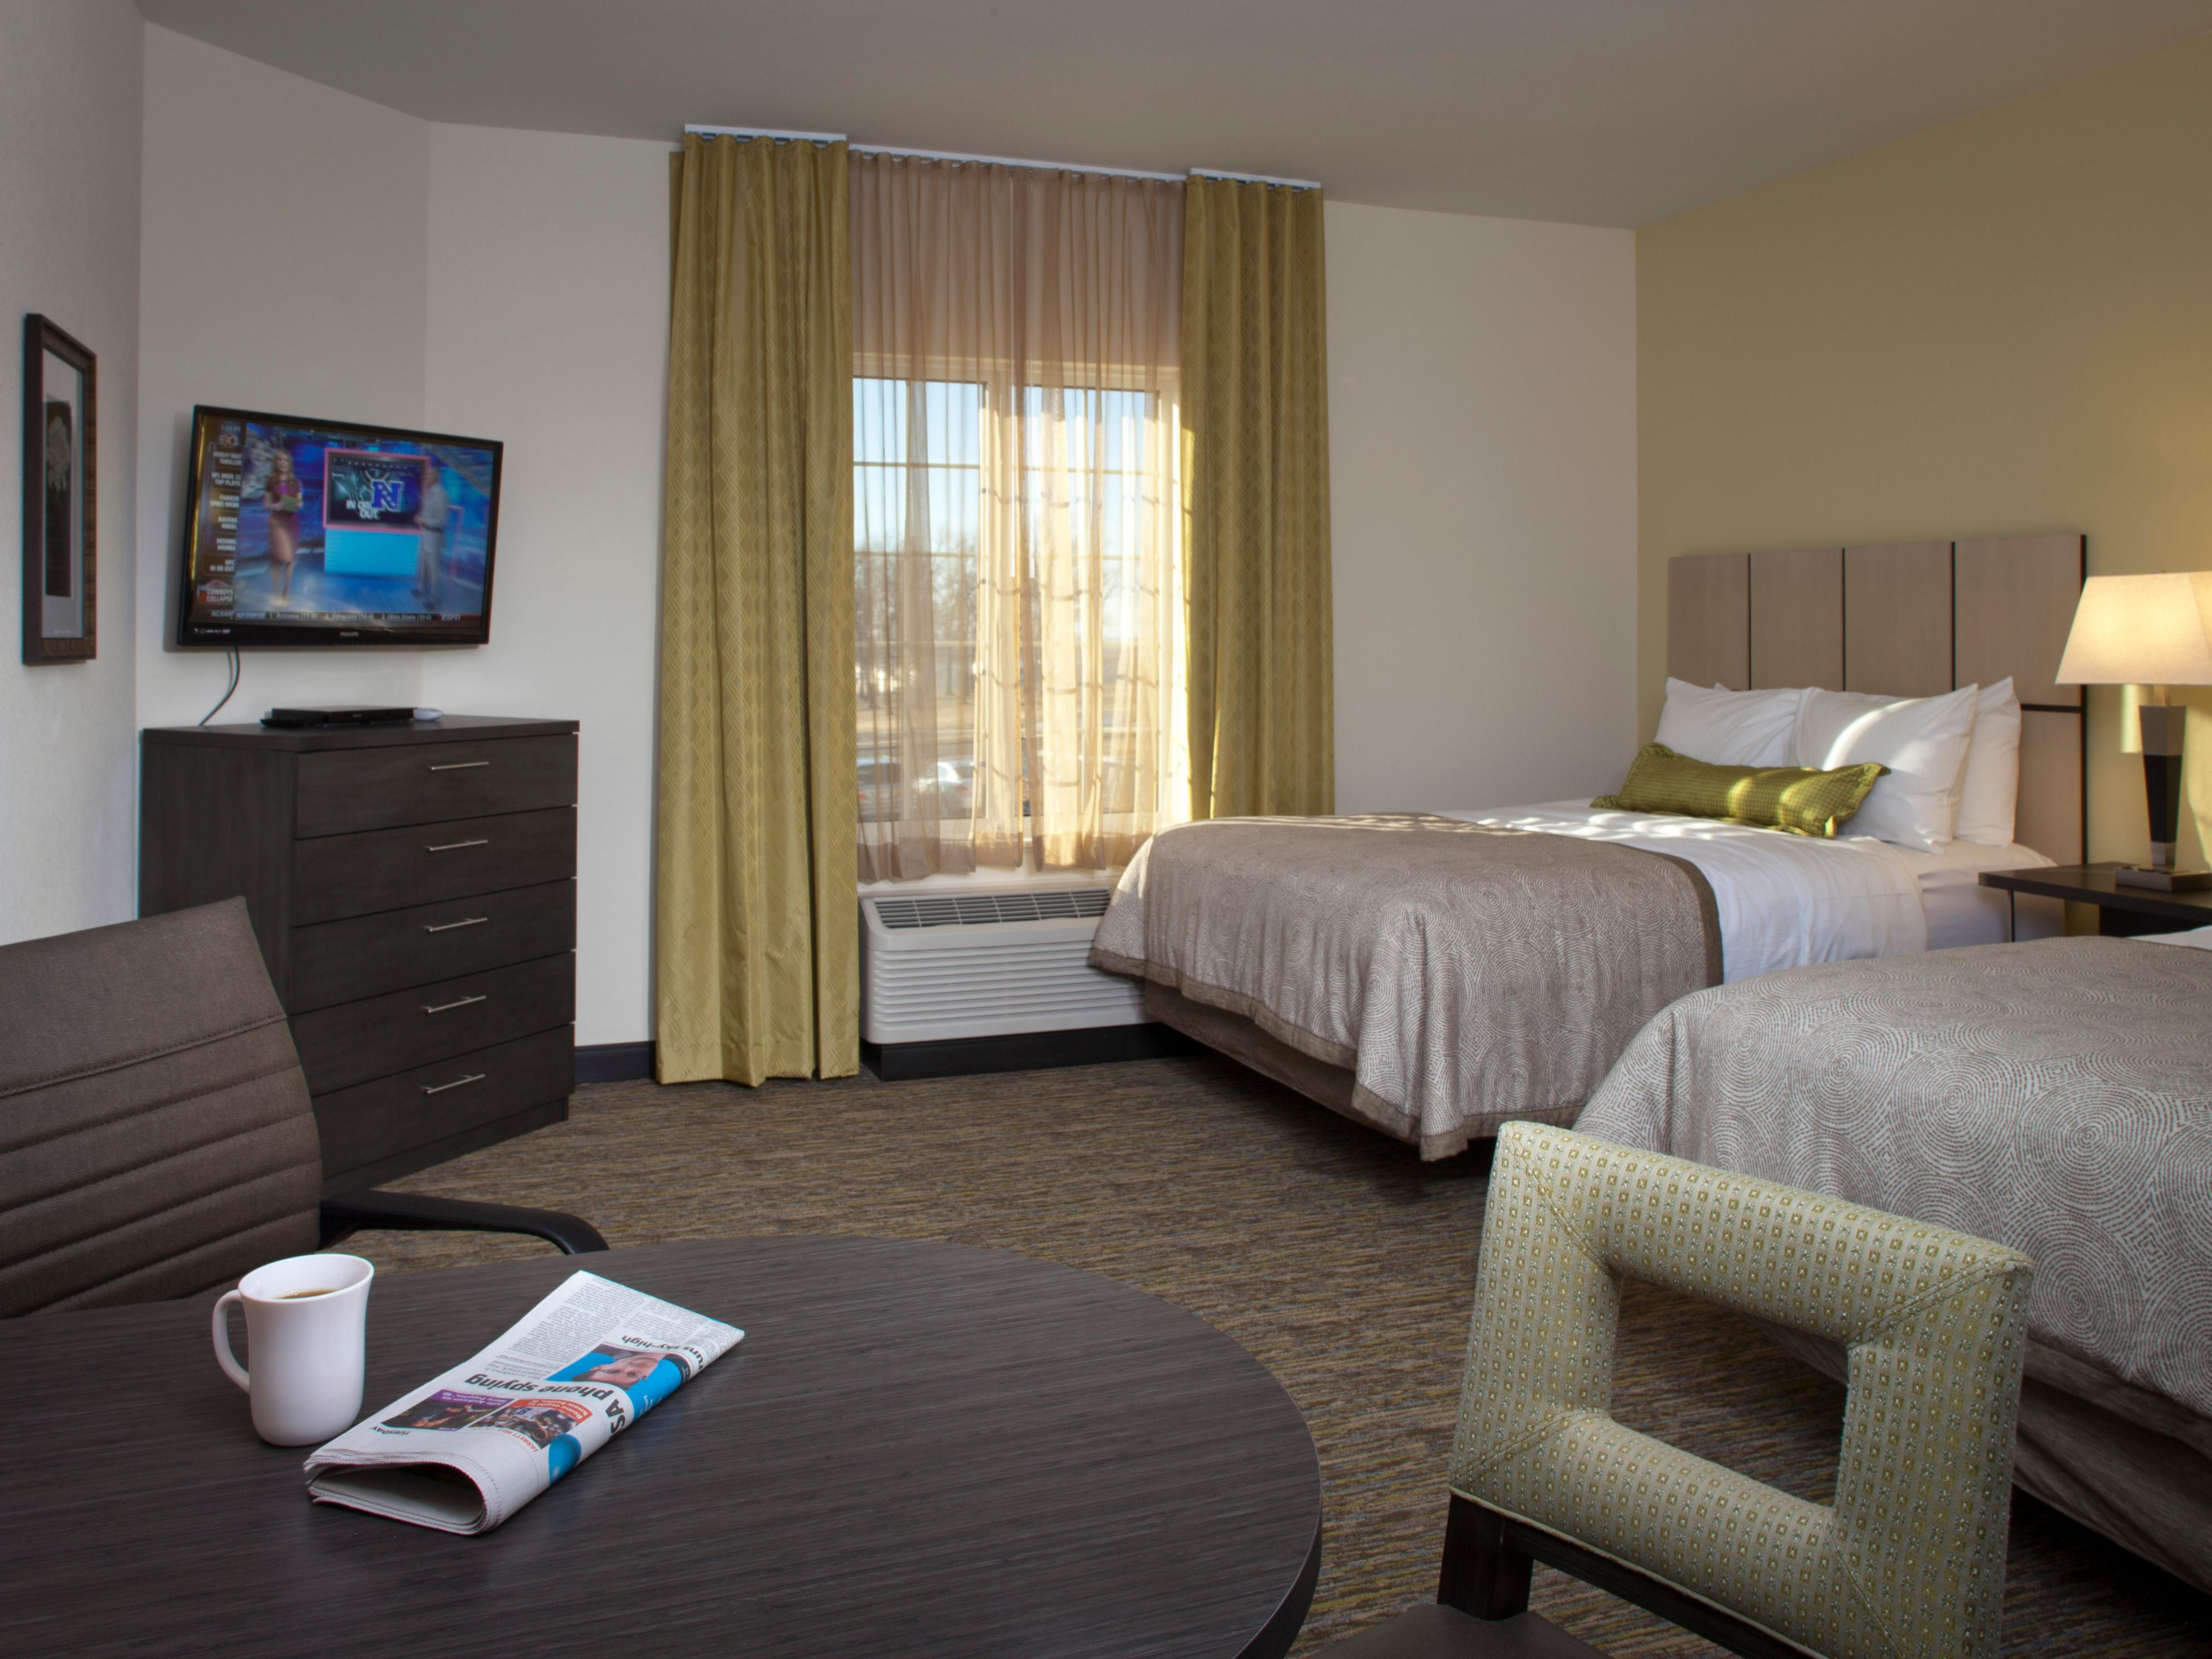 Rooms And Rates For Ihg Army Hotels Building 2426 At Ft